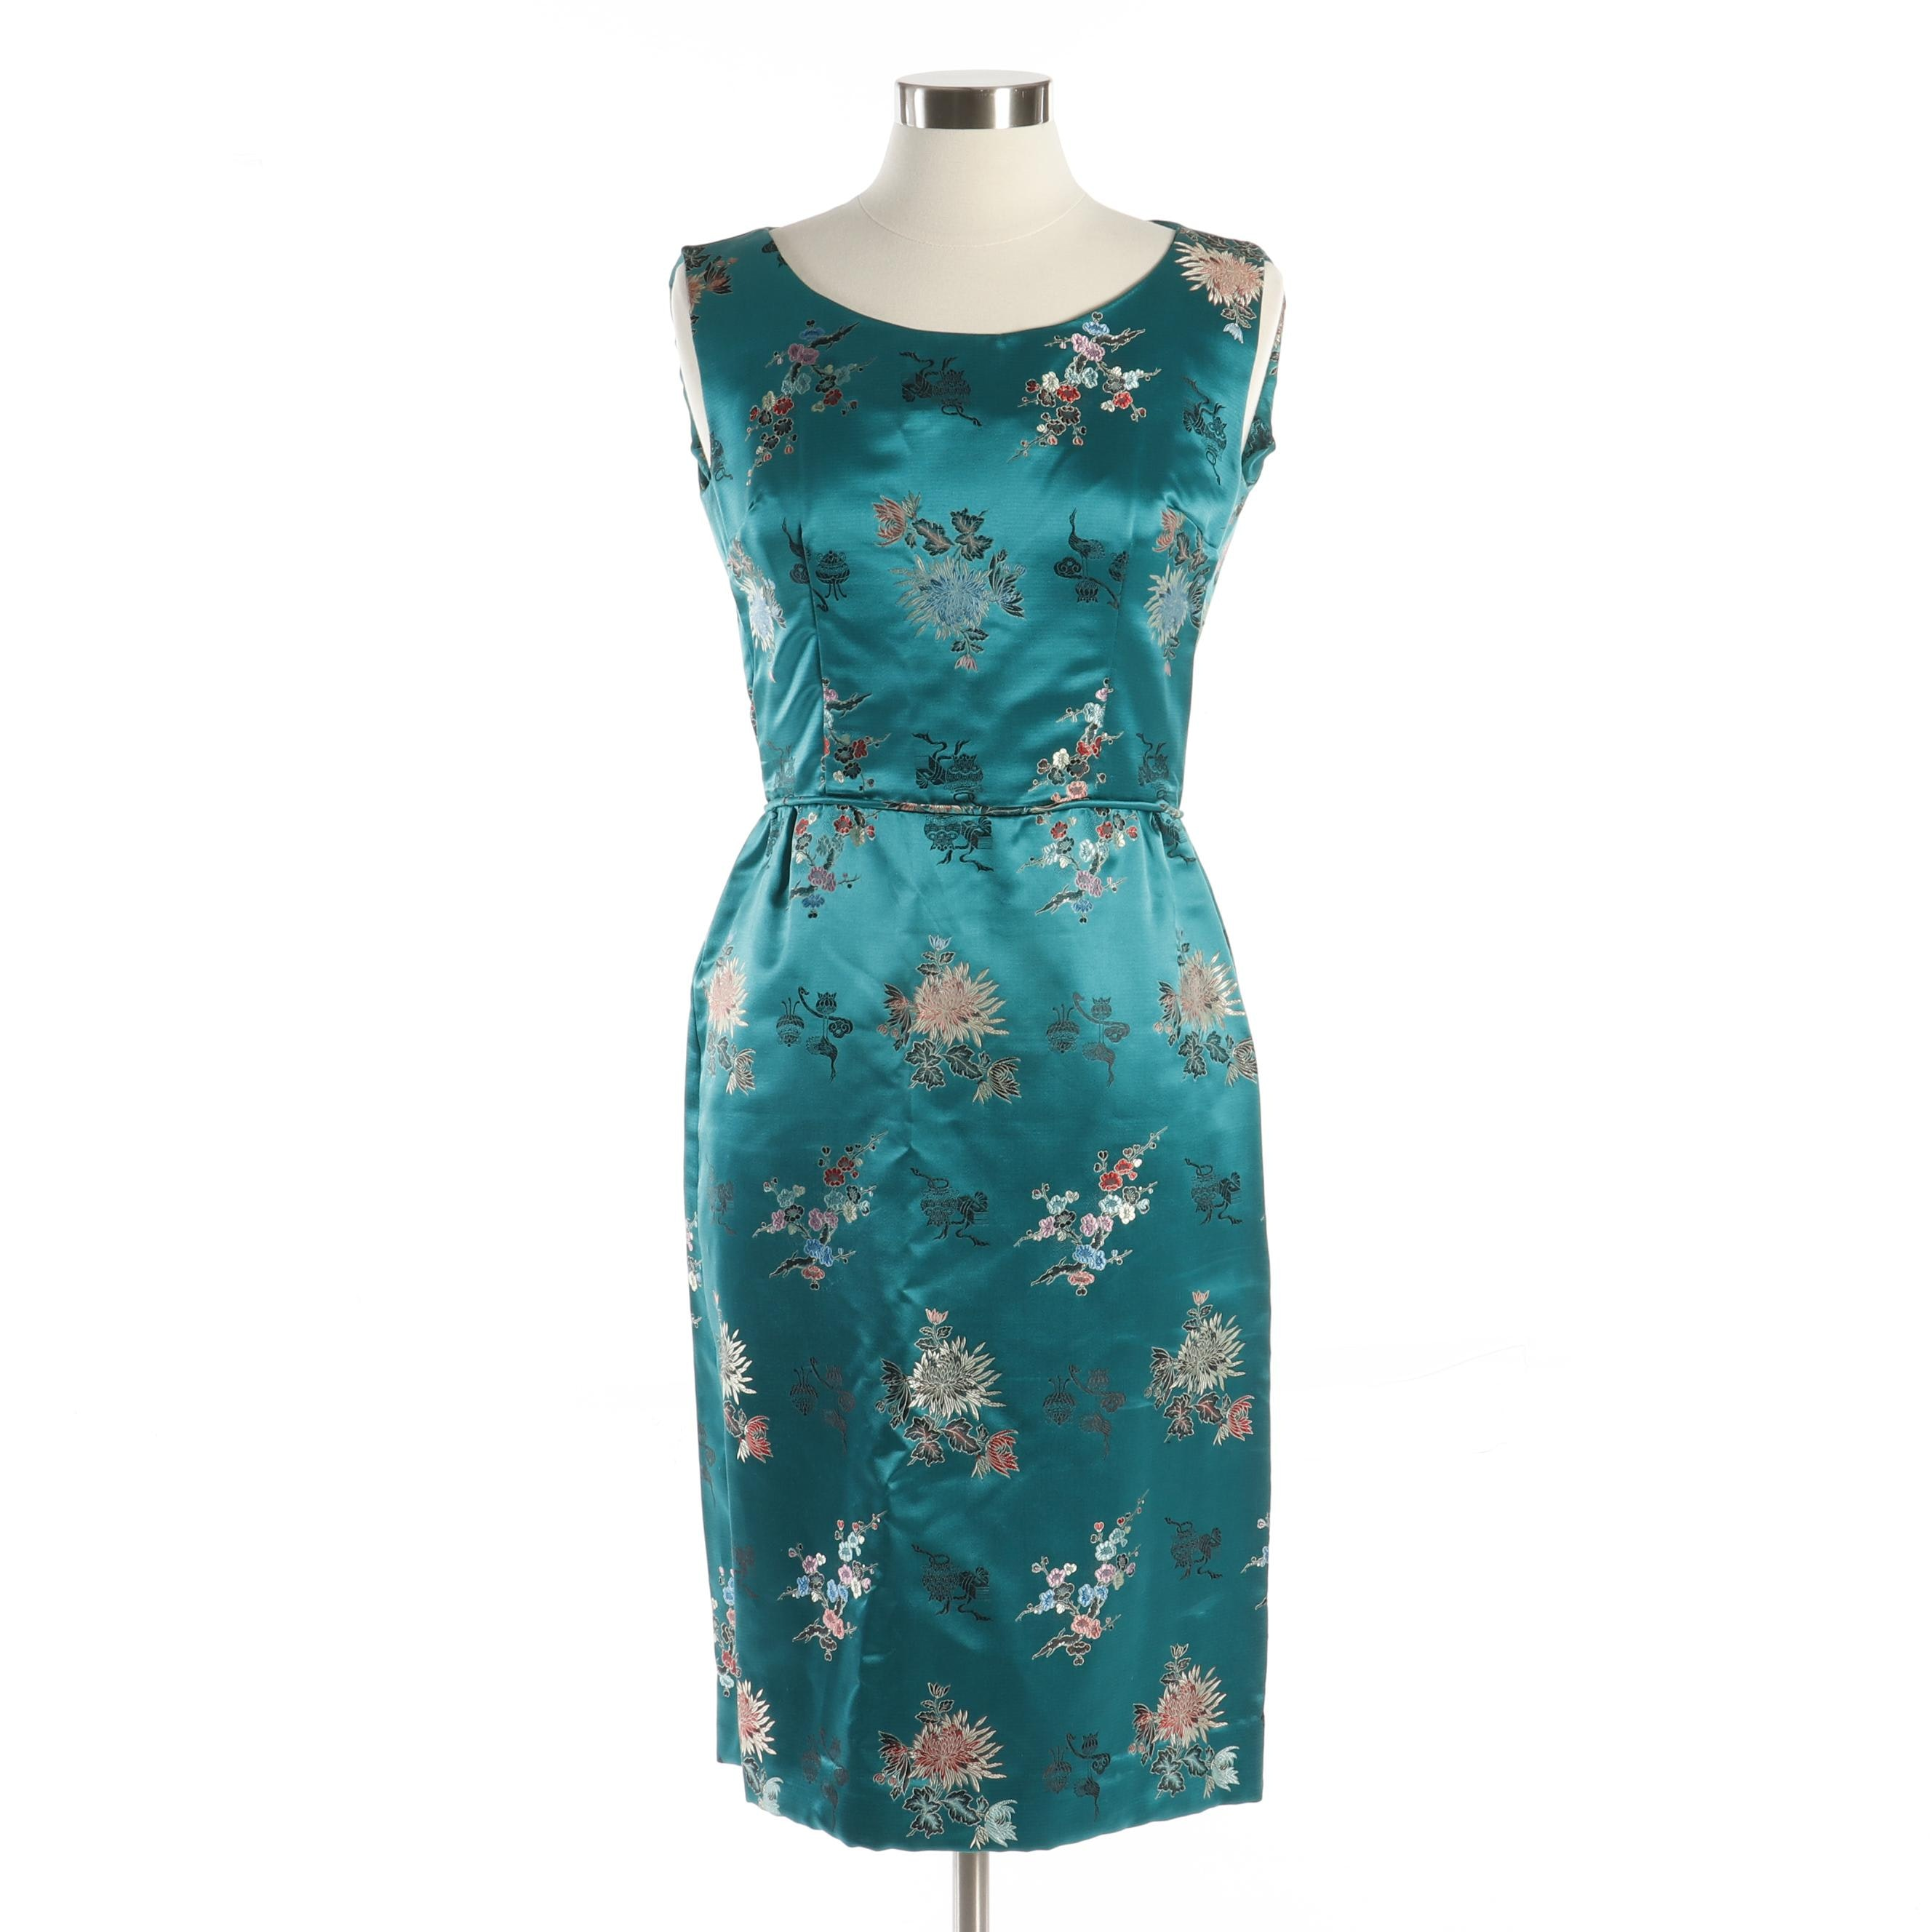 Handmade Asian Multicolor Floral Teal Brocade Satin Sleeveless Cocktail Dress